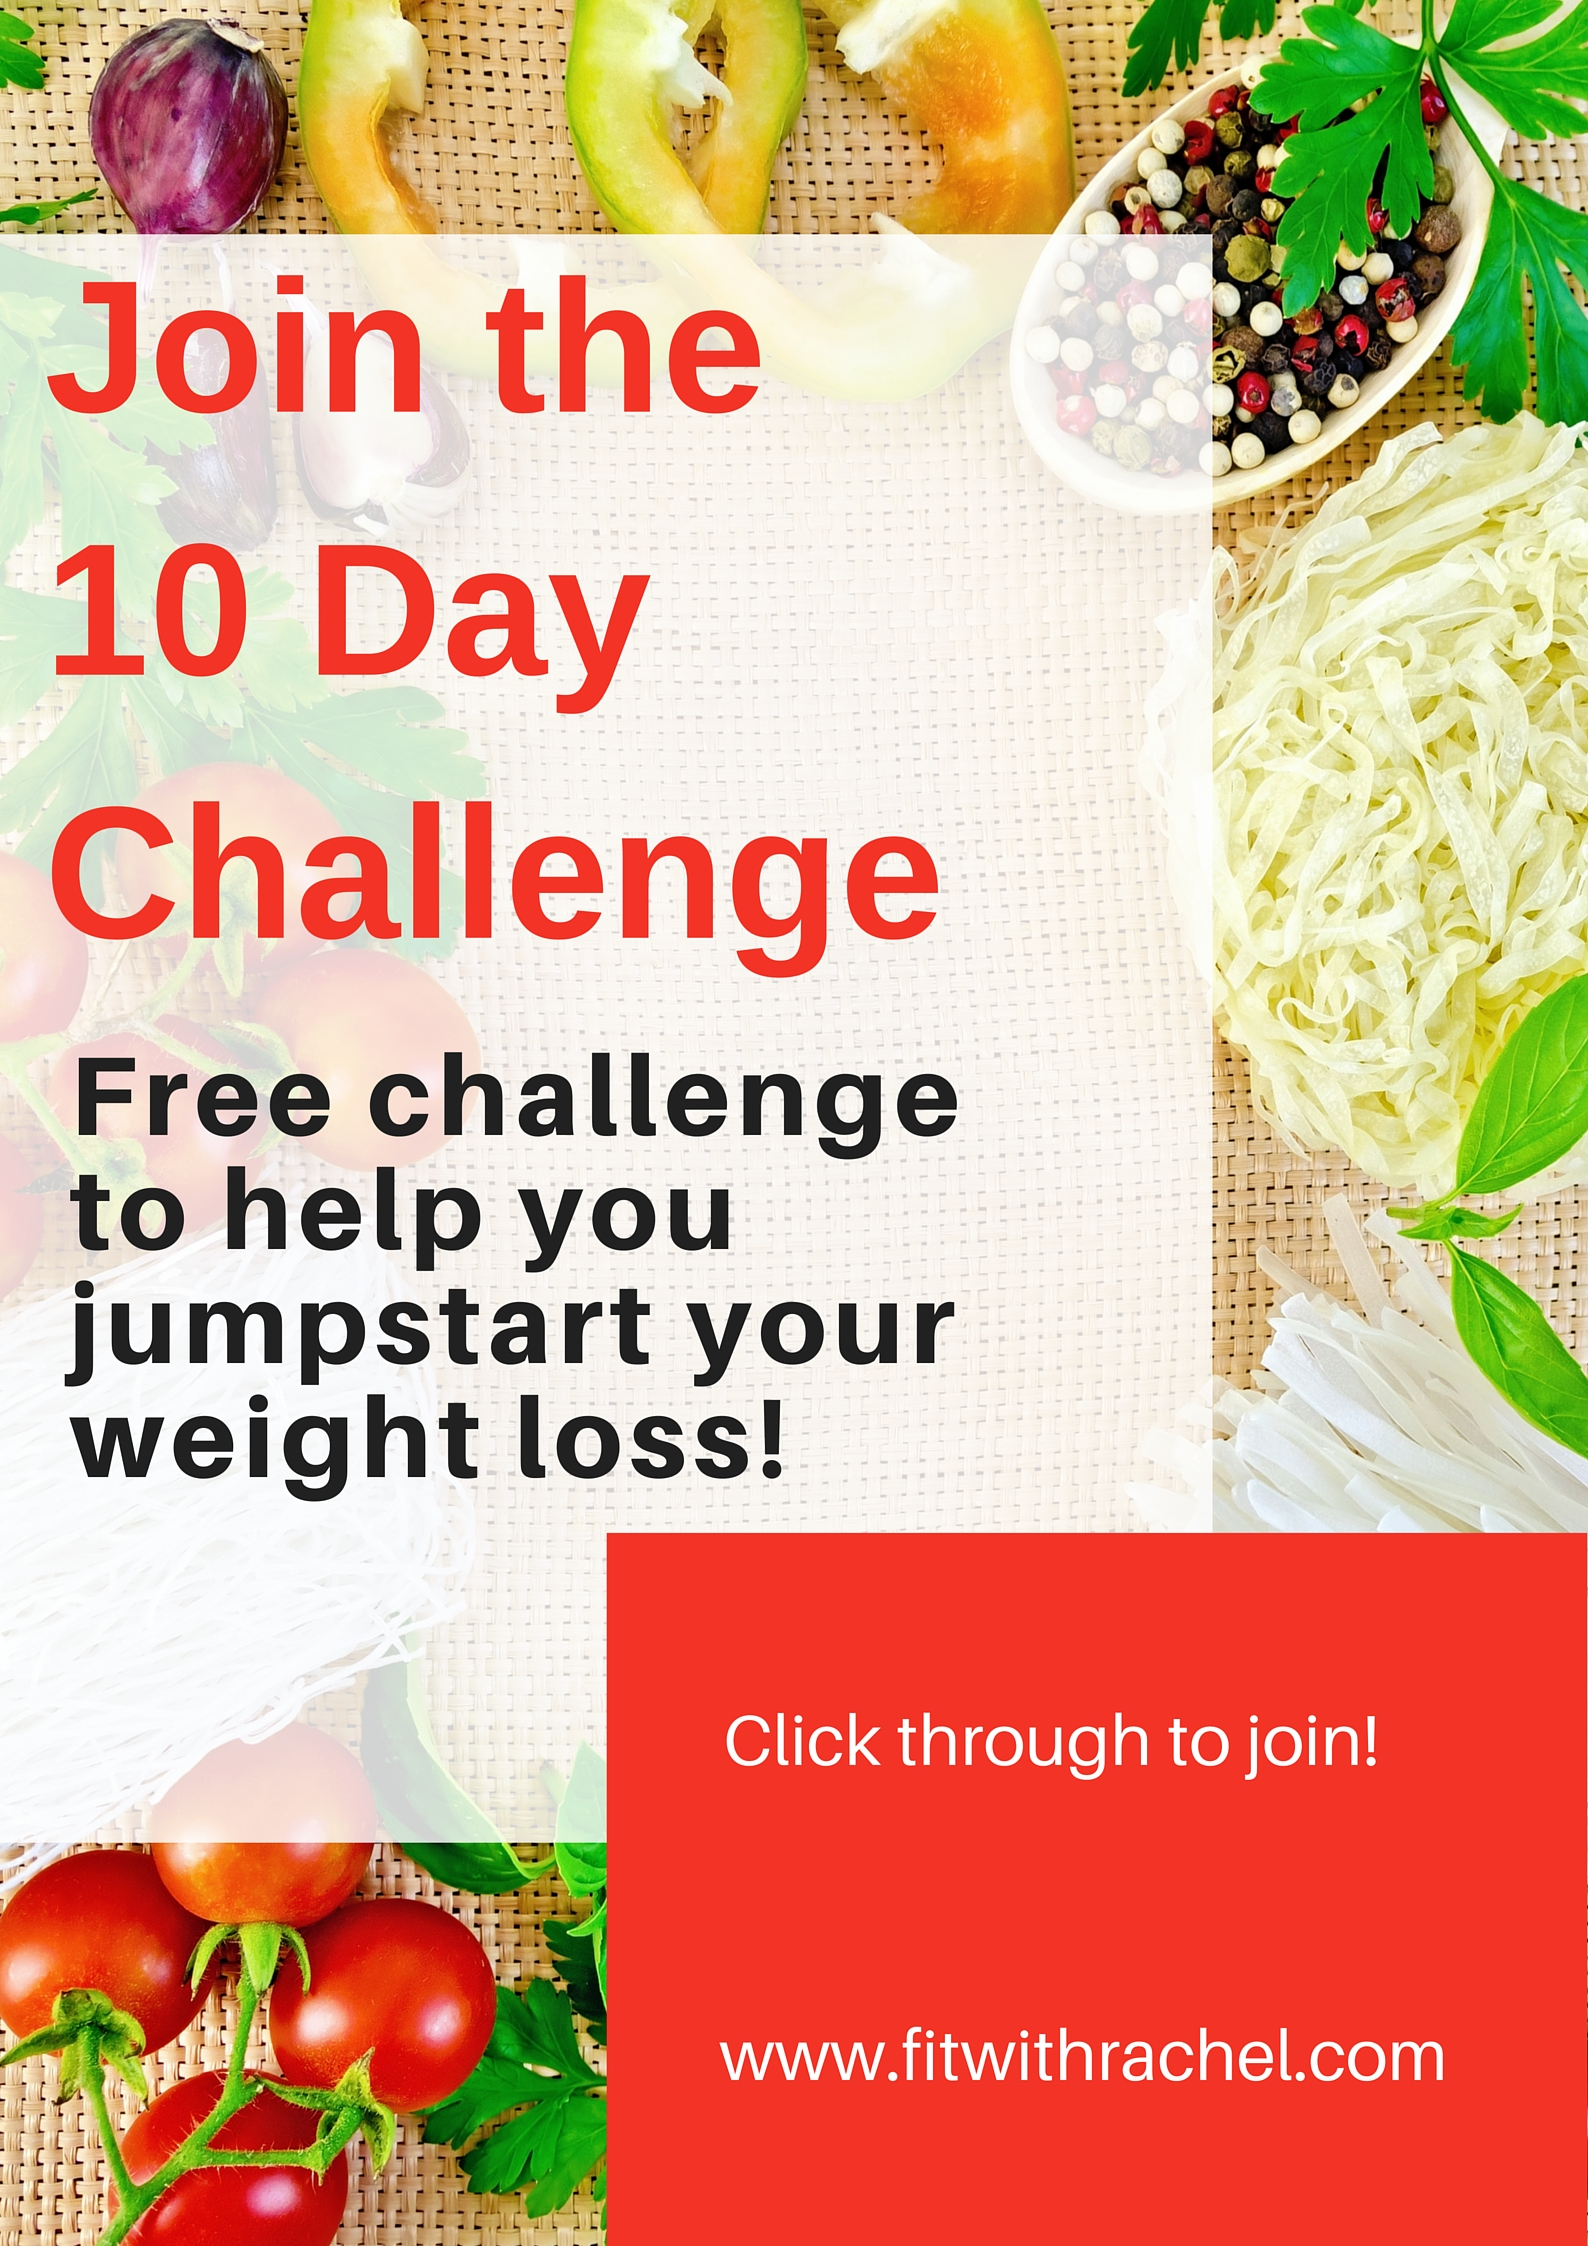 Medical weight loss by healthogenics lawrenceville ga picture 3